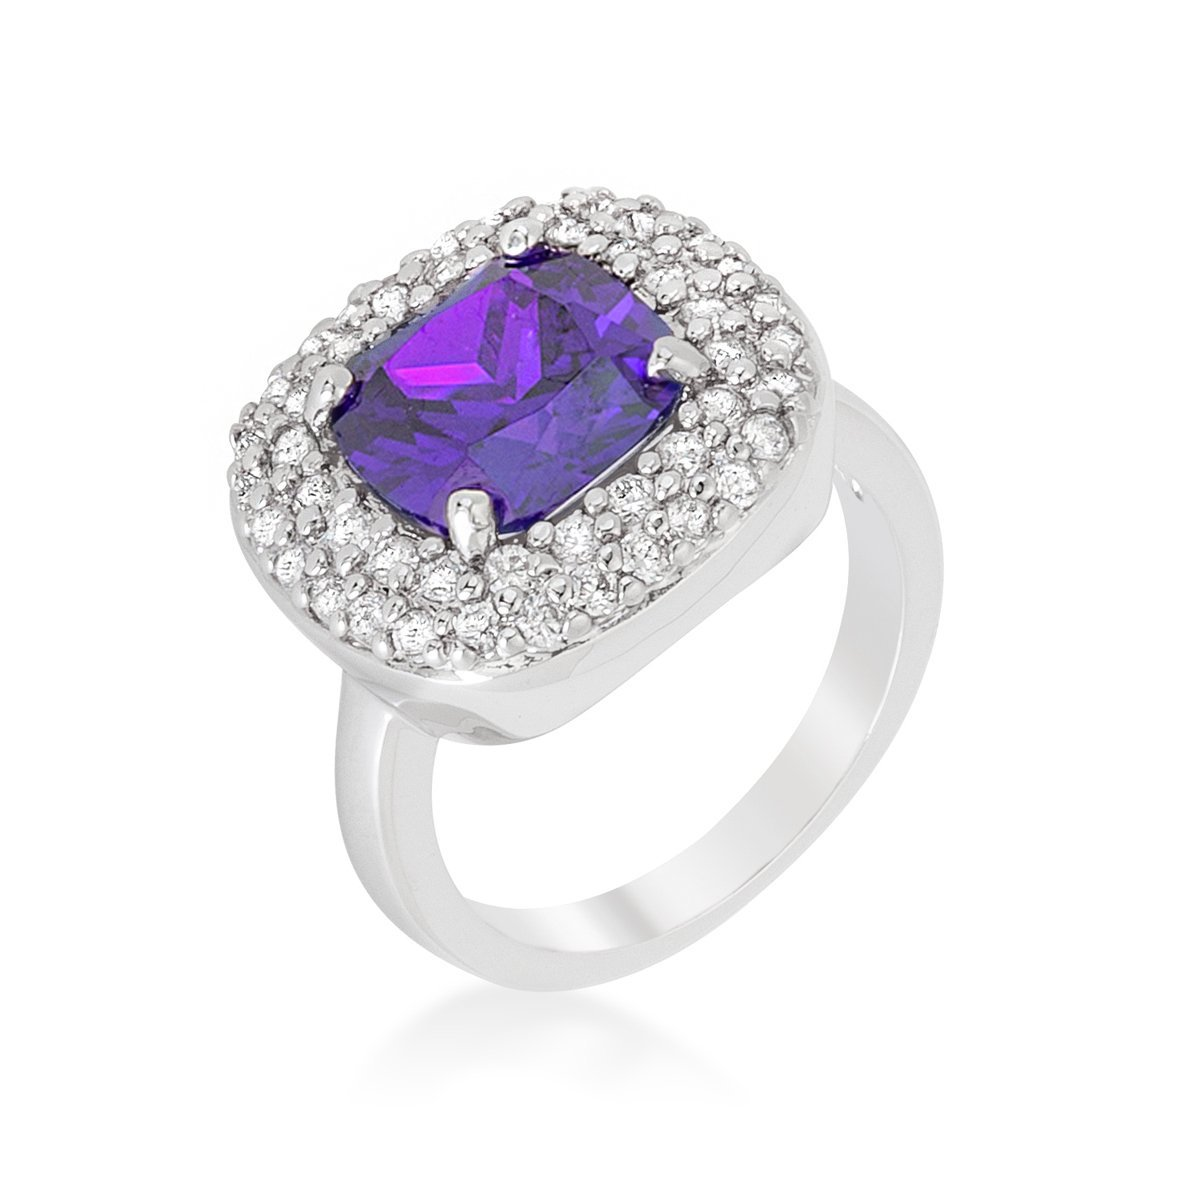 Rhodium Plated Bridal Cocktail Ring with Cushion Cut Amethyst Purple CZ Size 10